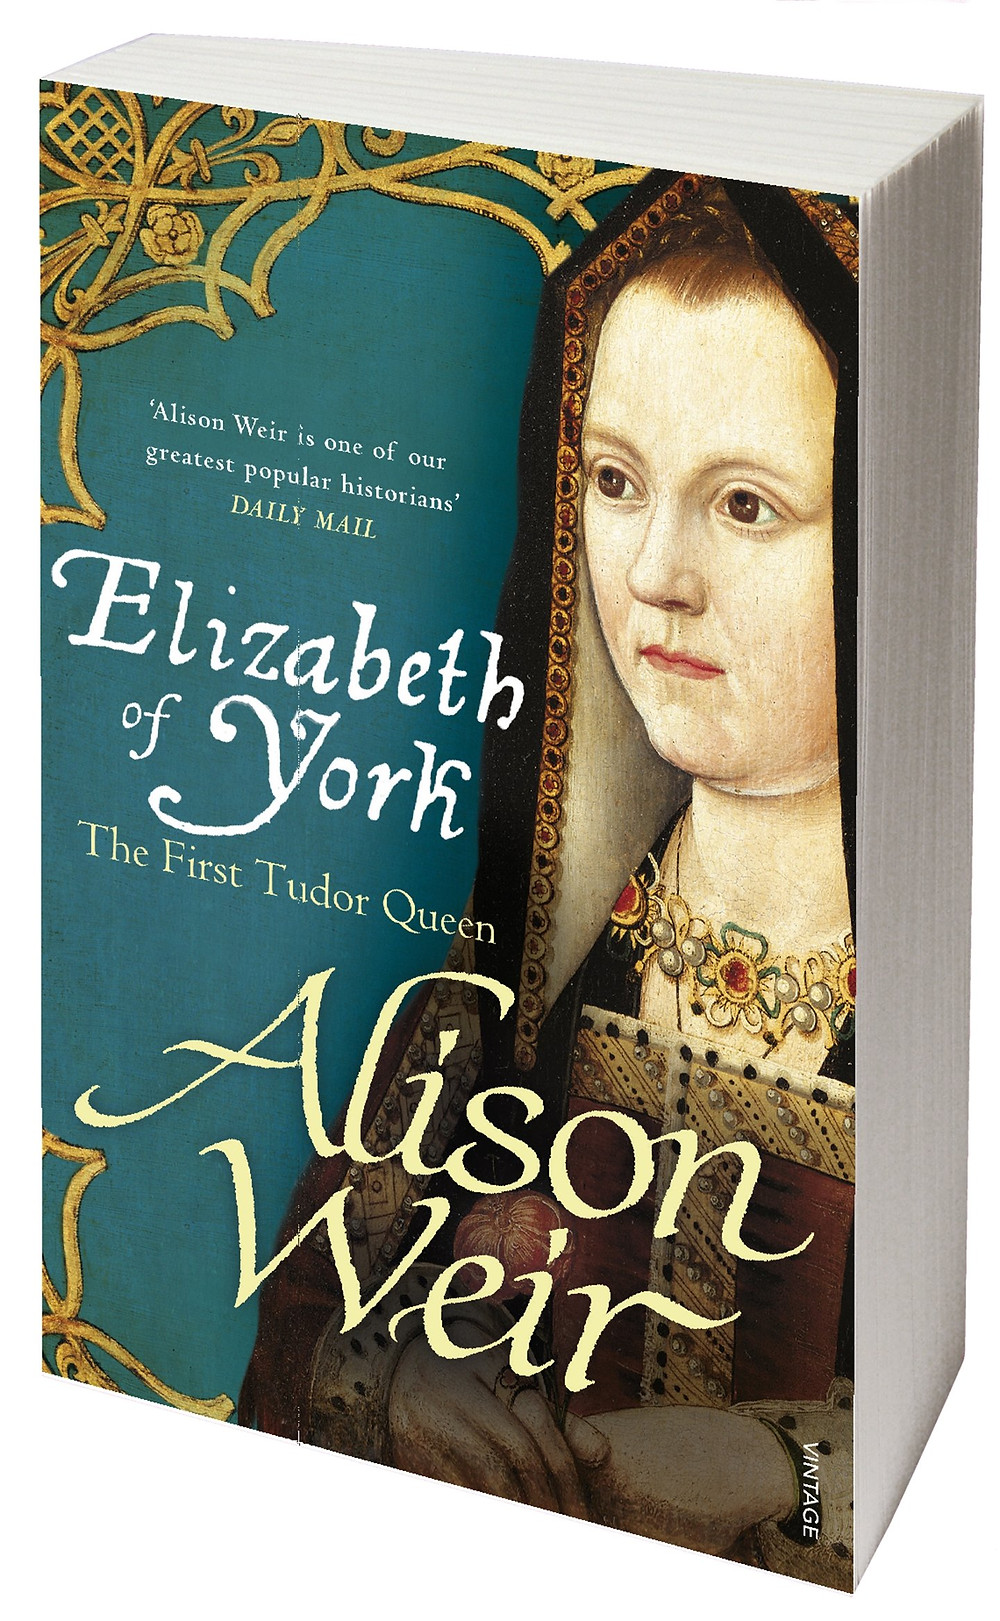 Elizabeth of York : The First Tudor Queen book cover. Alison Weir